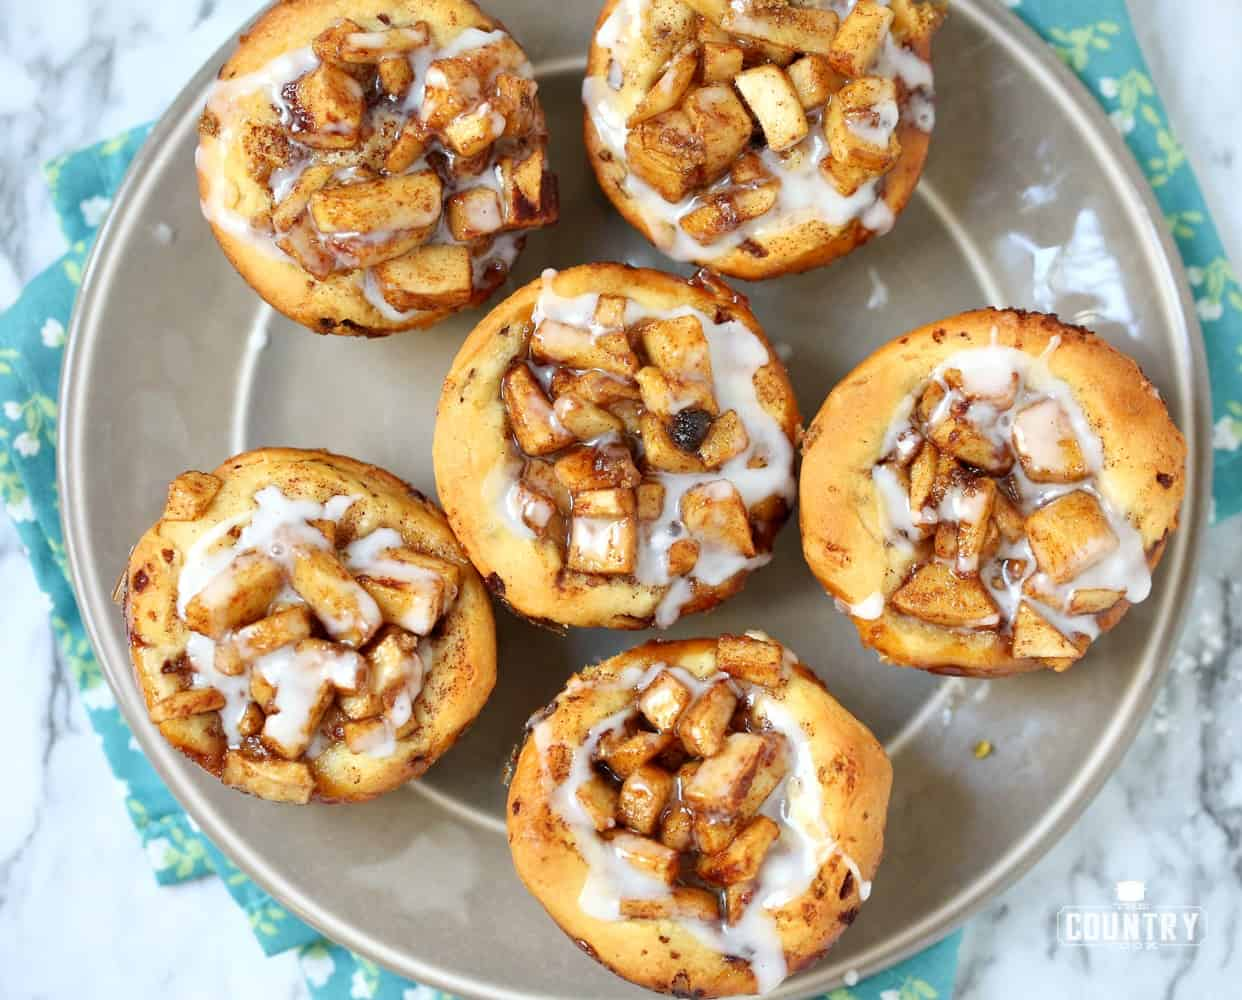 EASY APPLE PIE CINNAMON ROLLS